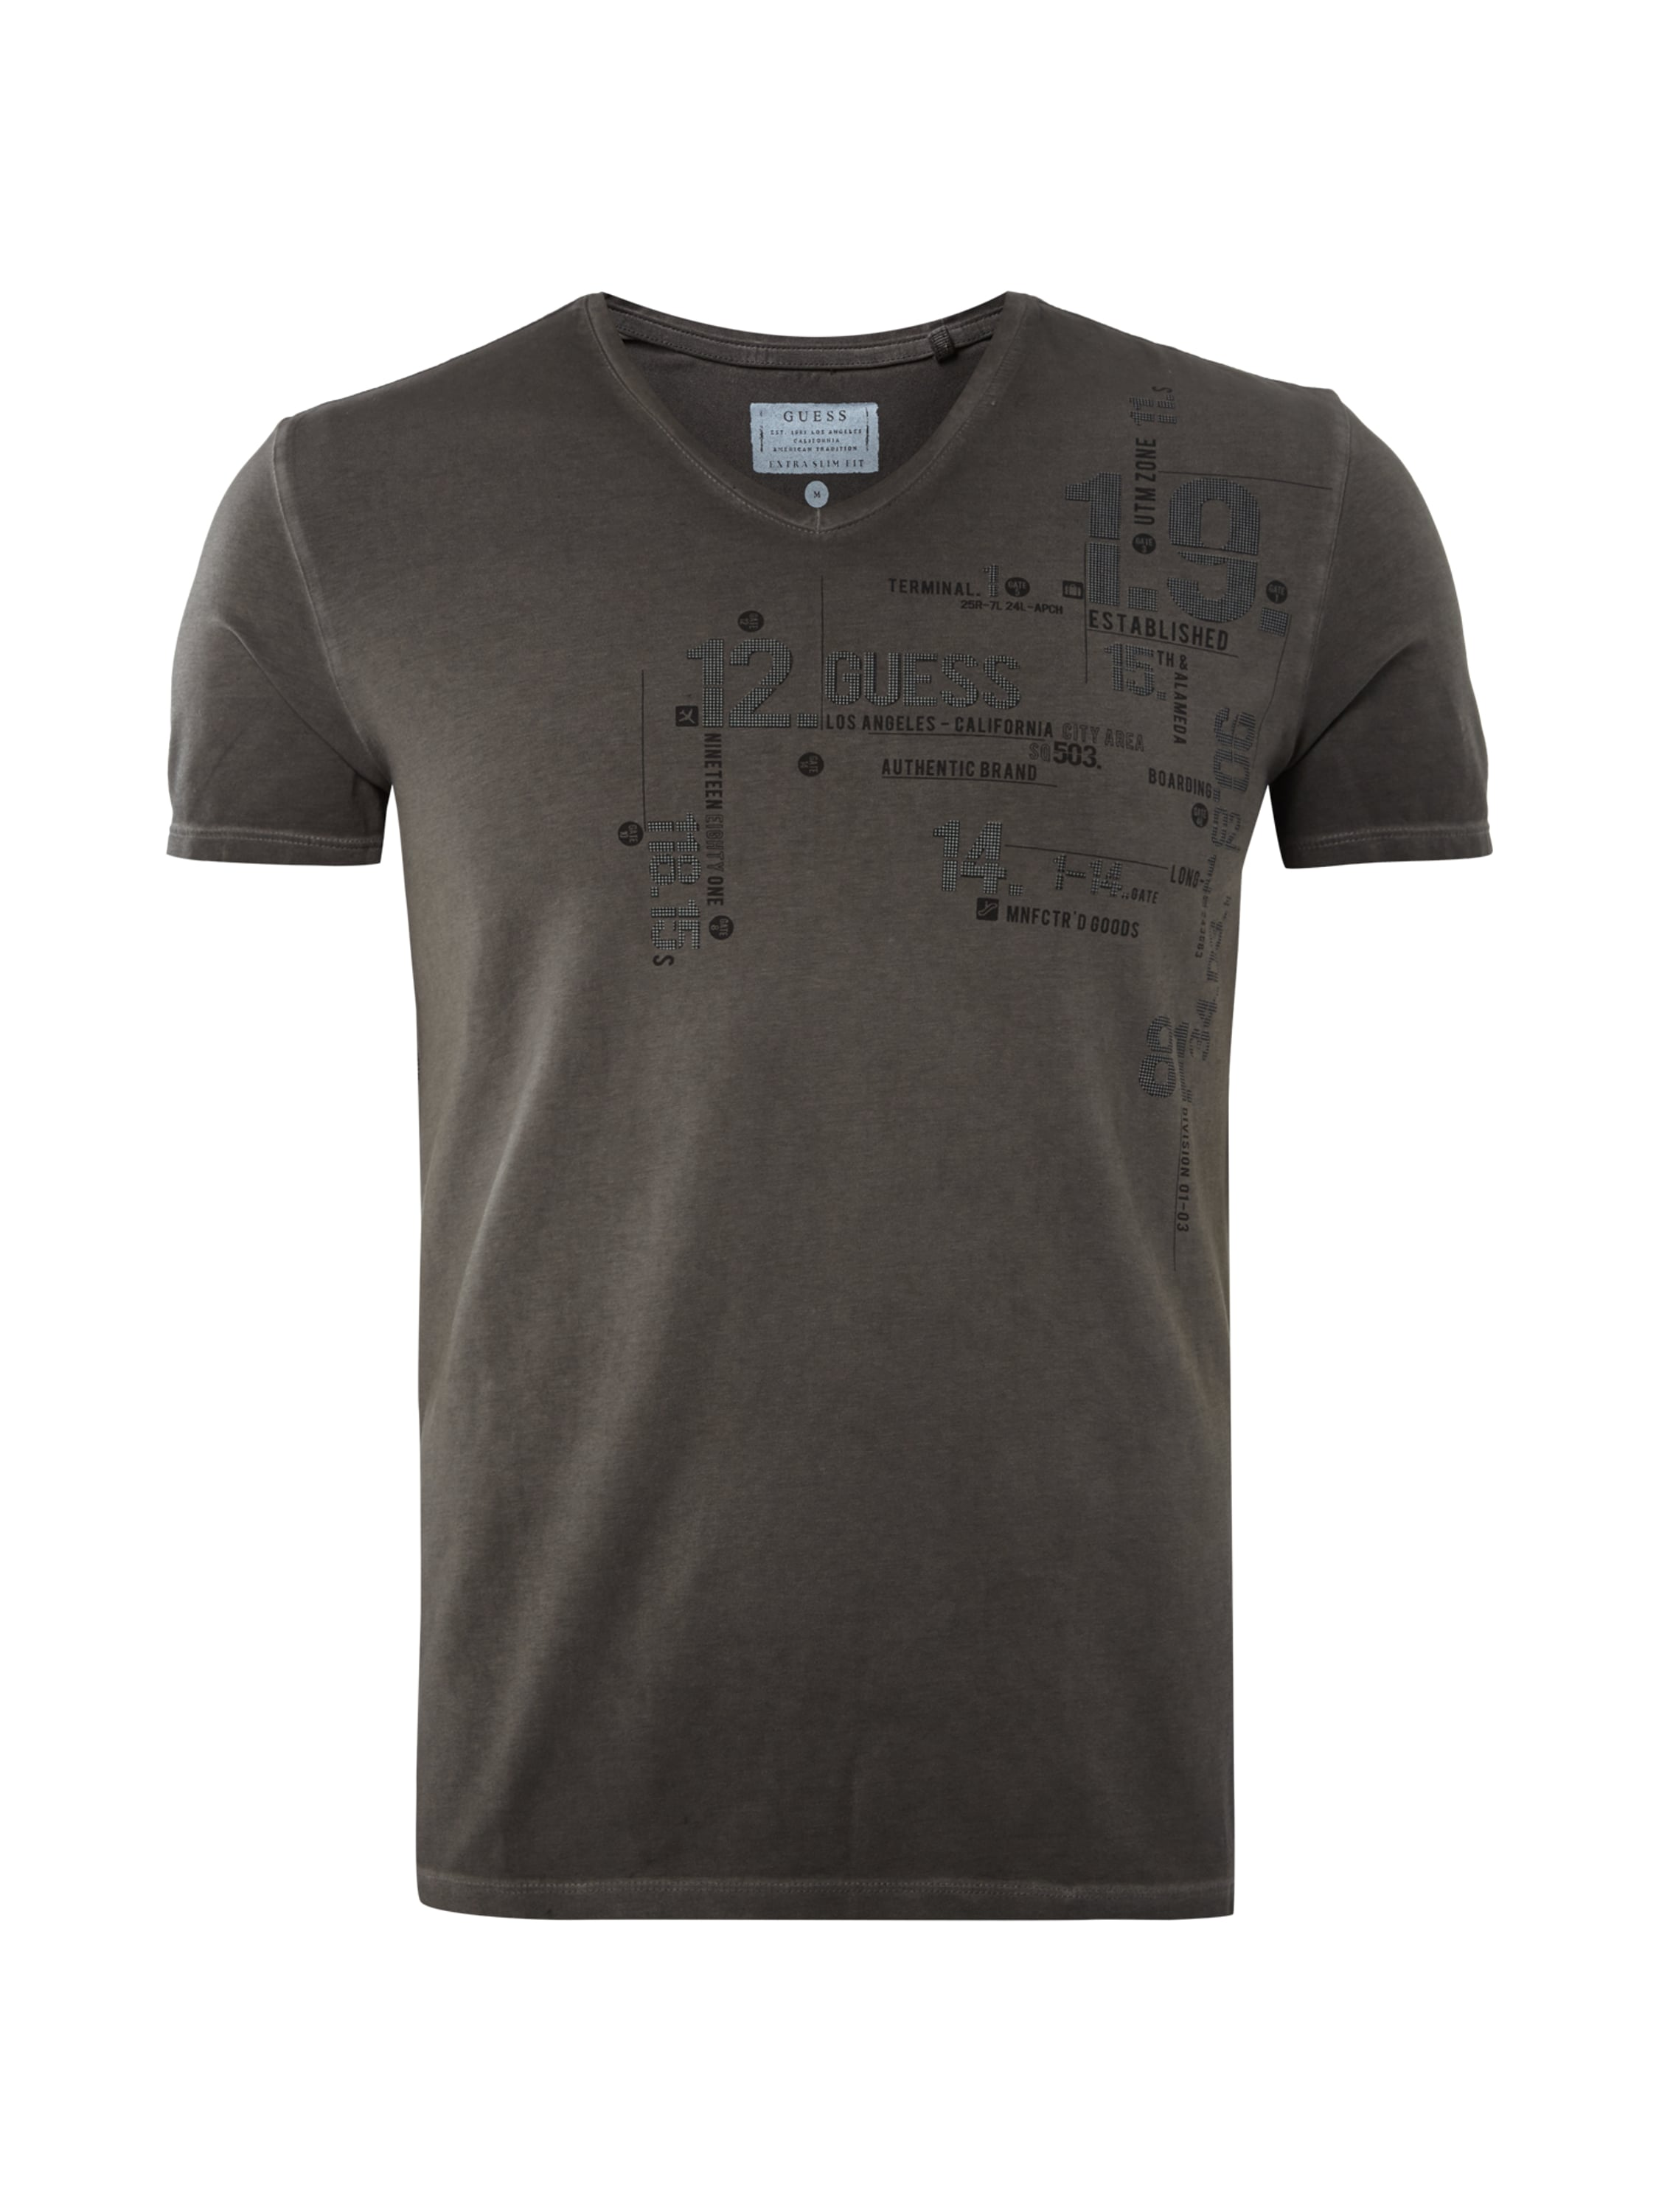 Guess extra slim fit t shirt mit logo print in grau for Shirts with logo print